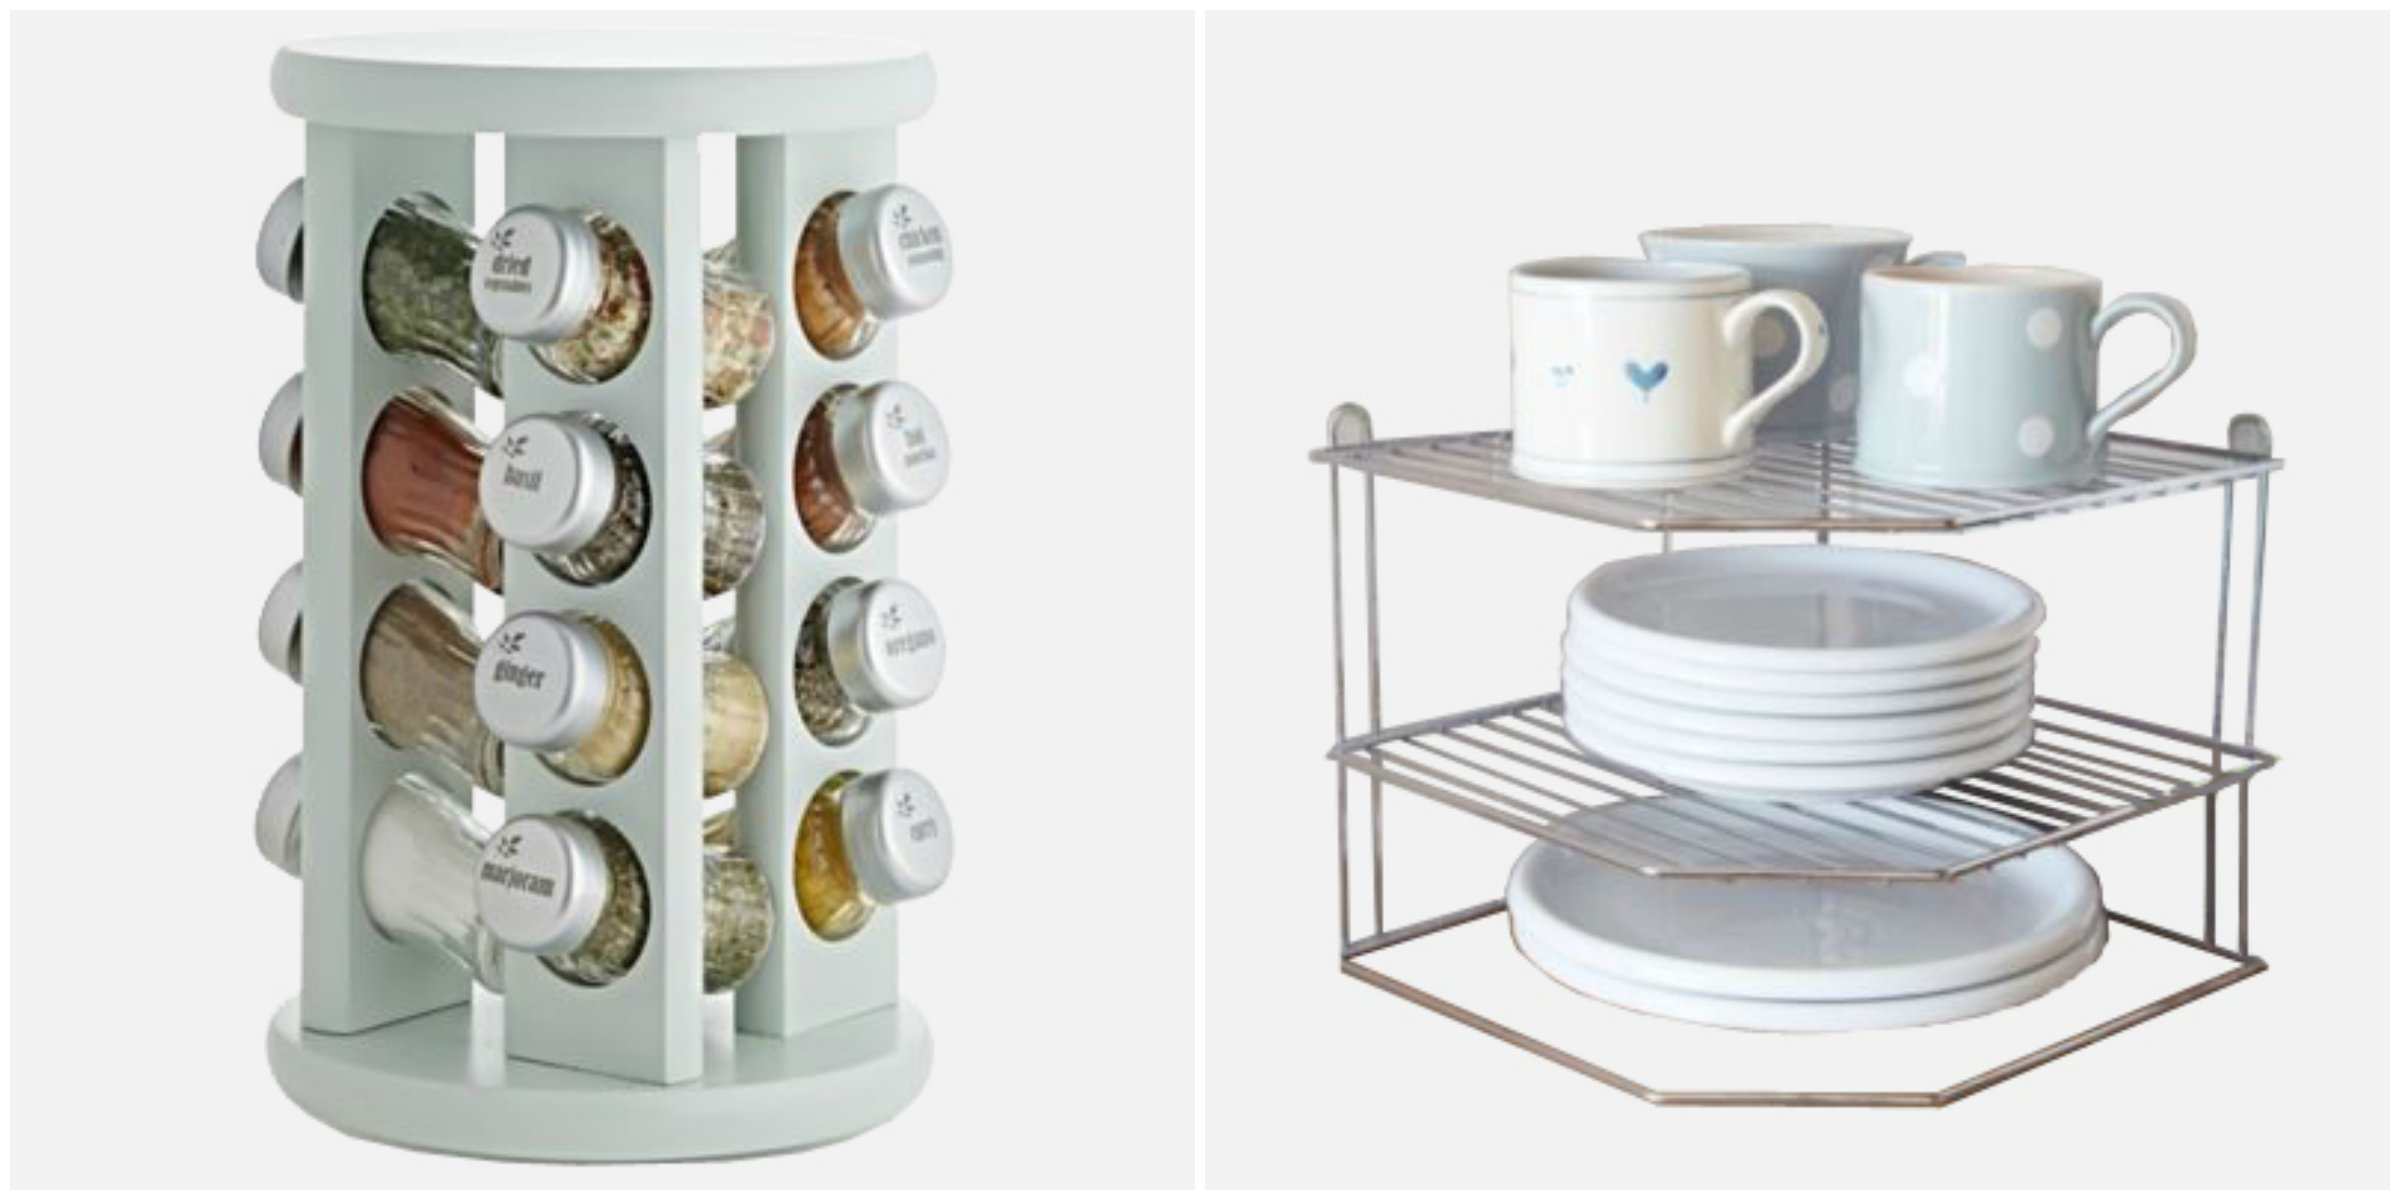 Spice Rack and Plate Rack